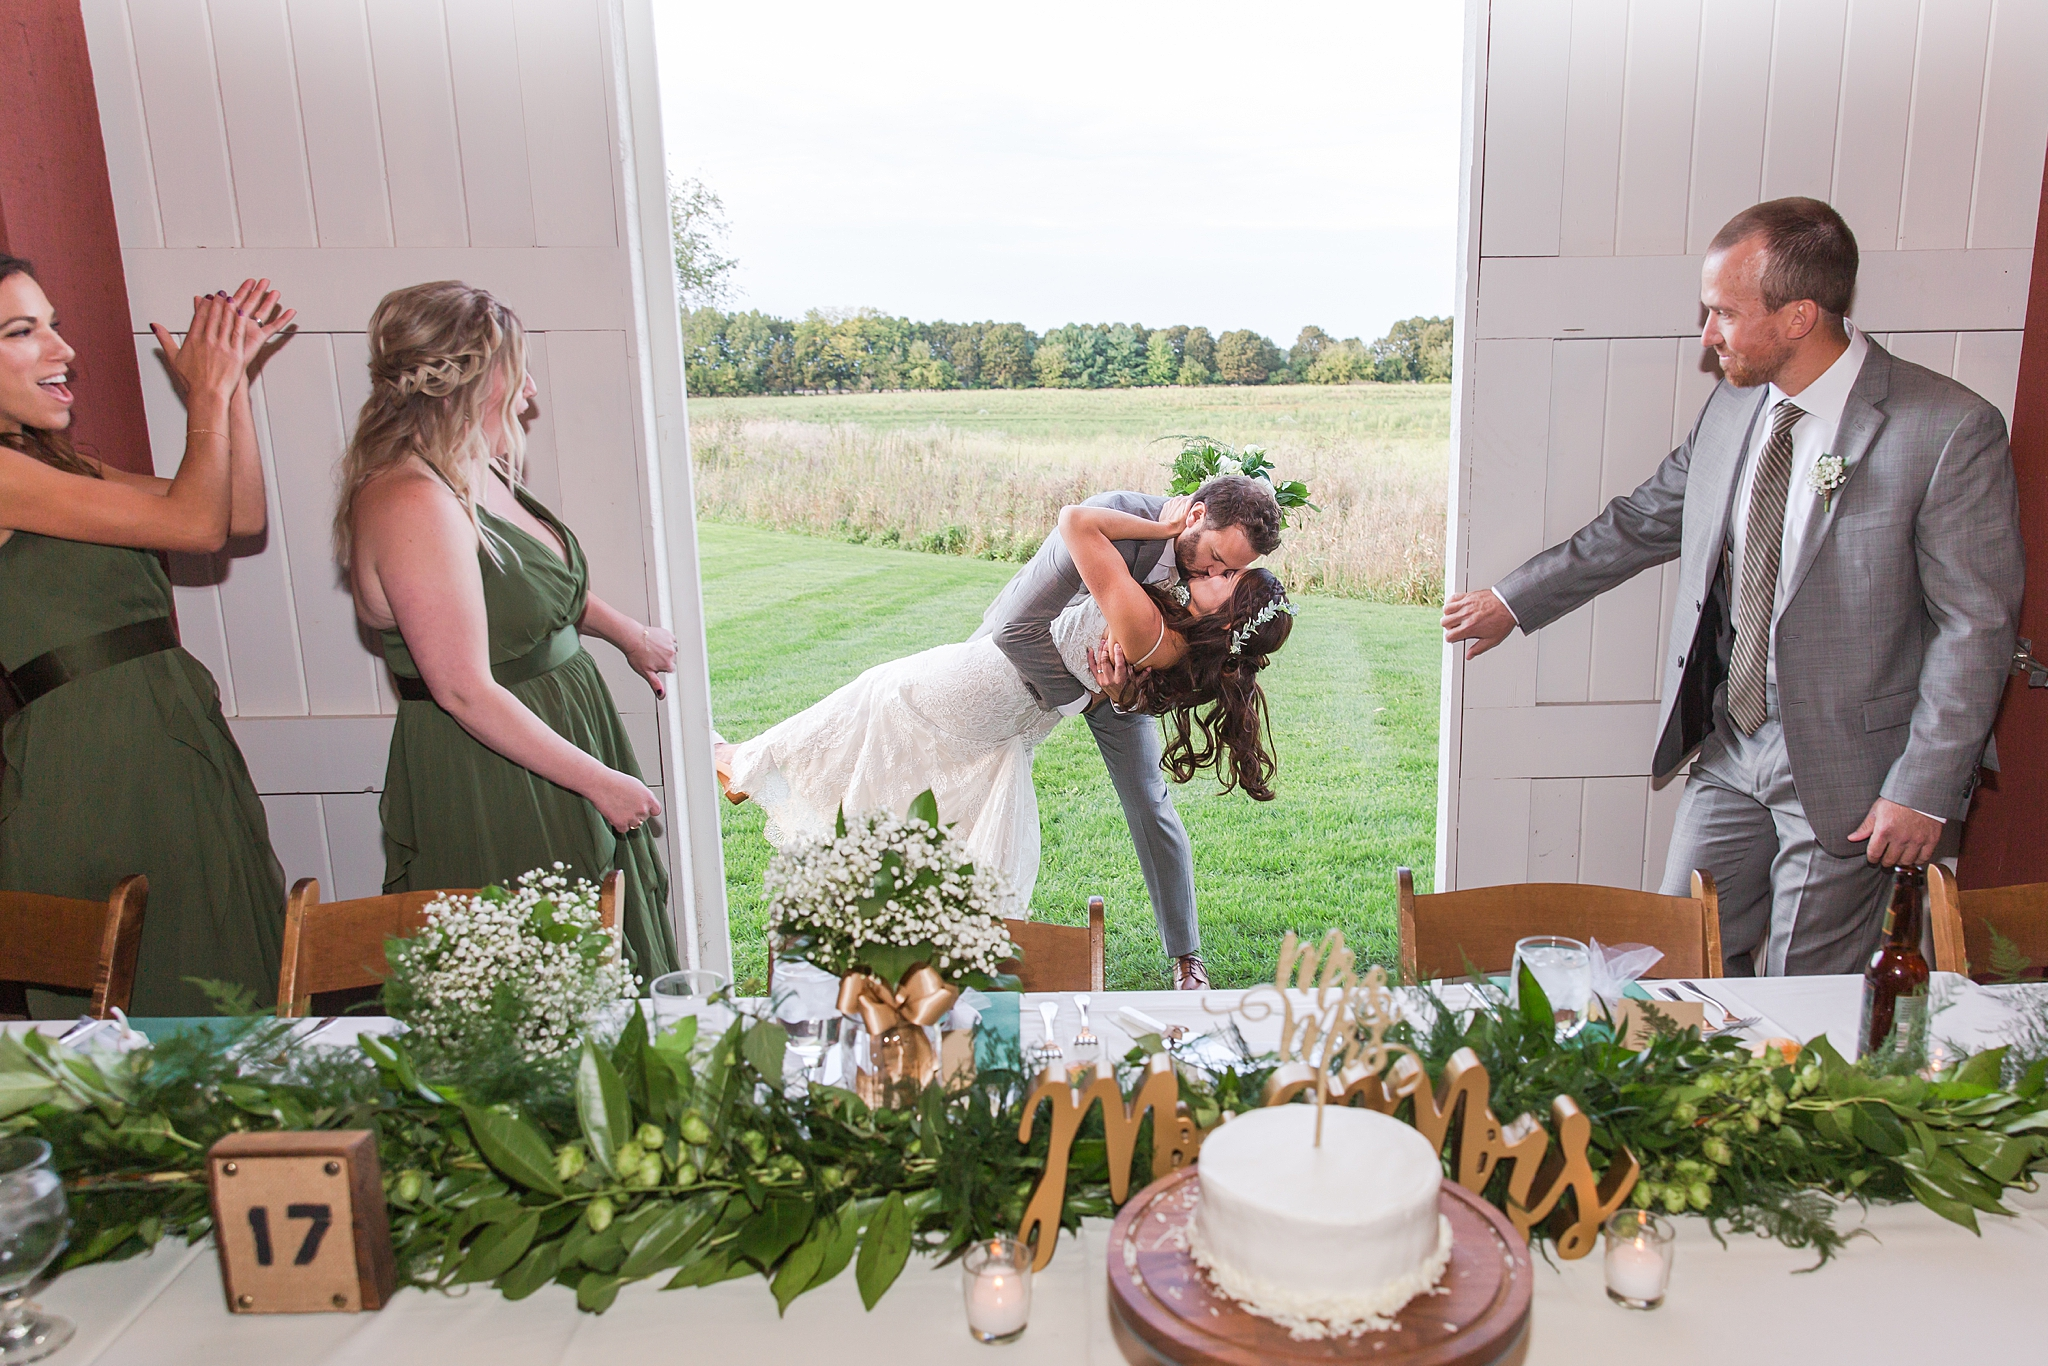 joyful-romantic-modern-laid-back-wedding-photography-in-detroit-ann-arbor-northern-mi-and-chicago-by-courtney-carolyn-photography_0045.jpg